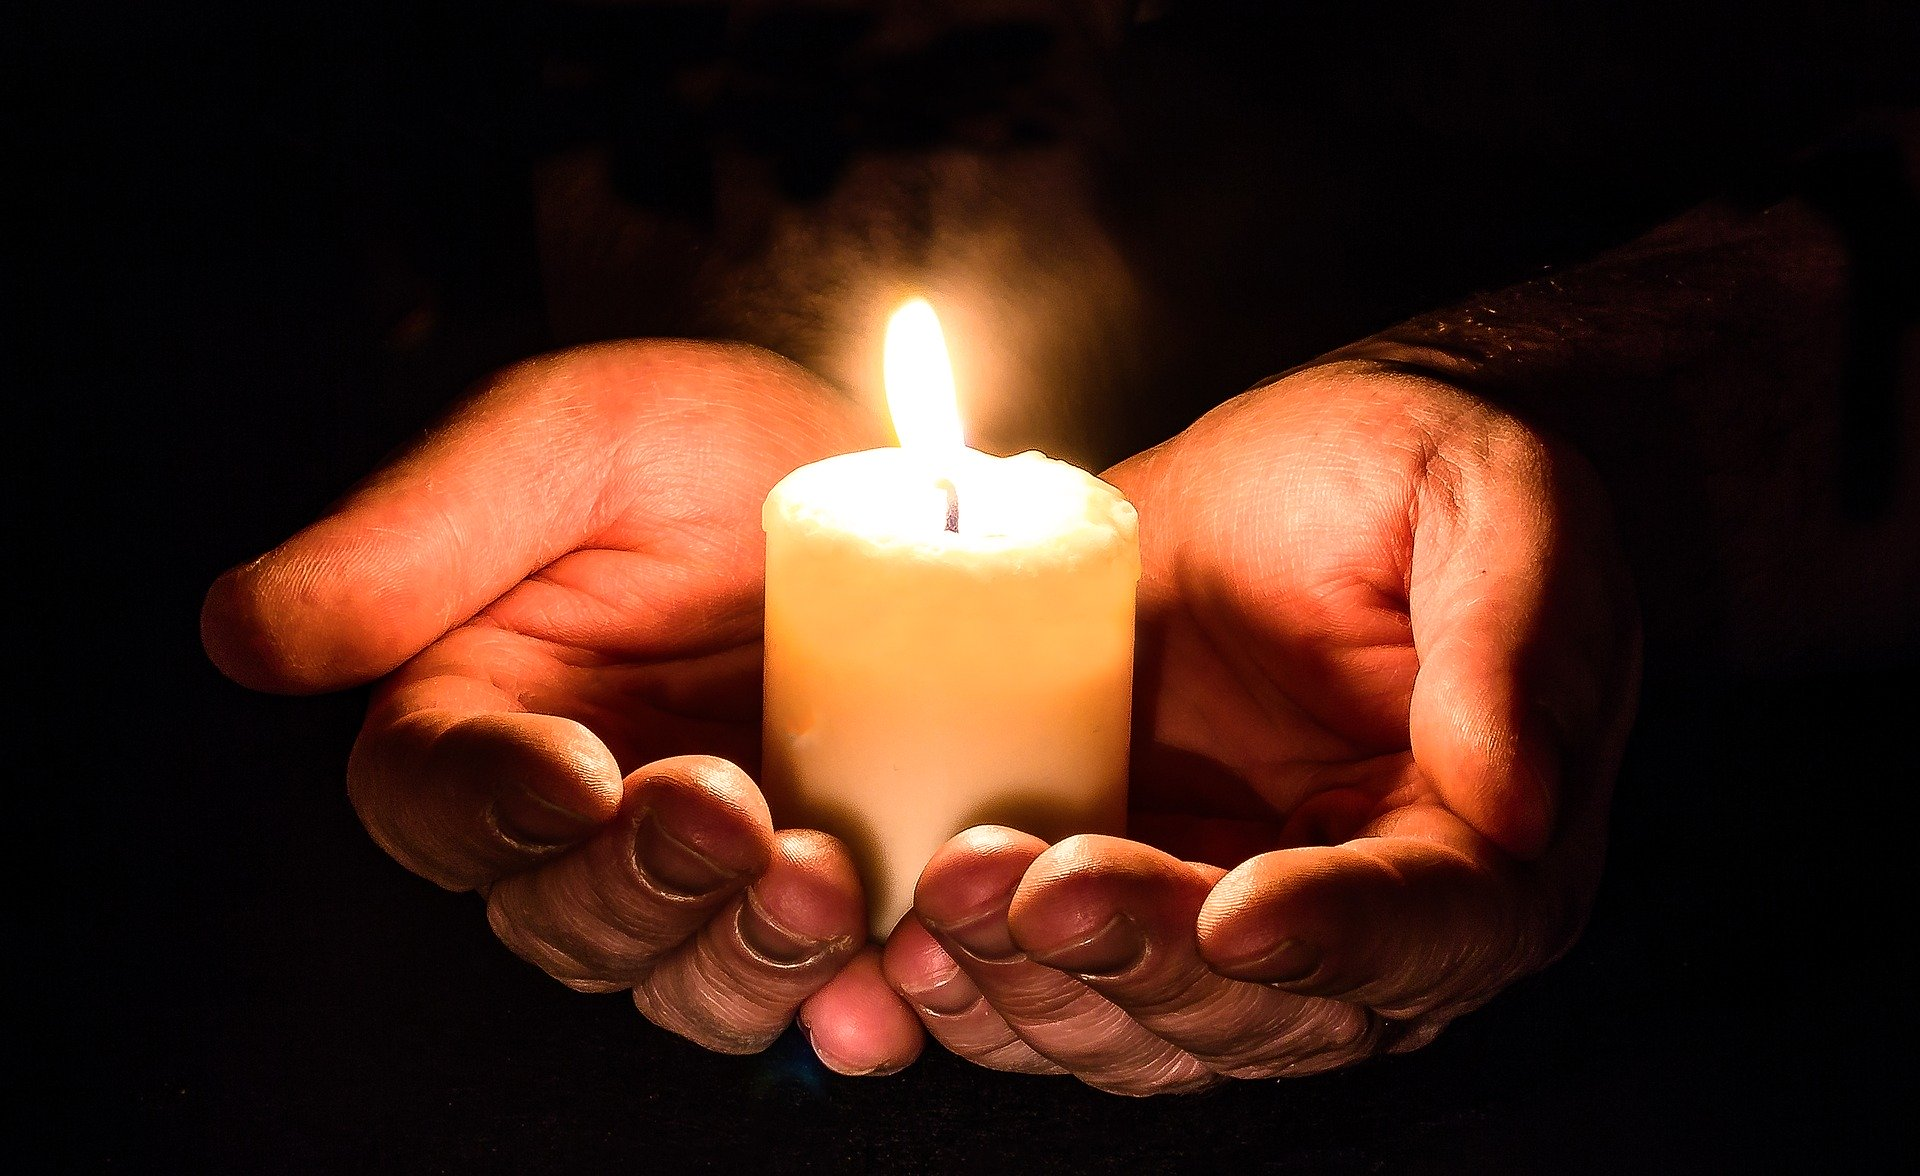 Hand and candle (Image by Myriam Zilles from Pixabay)